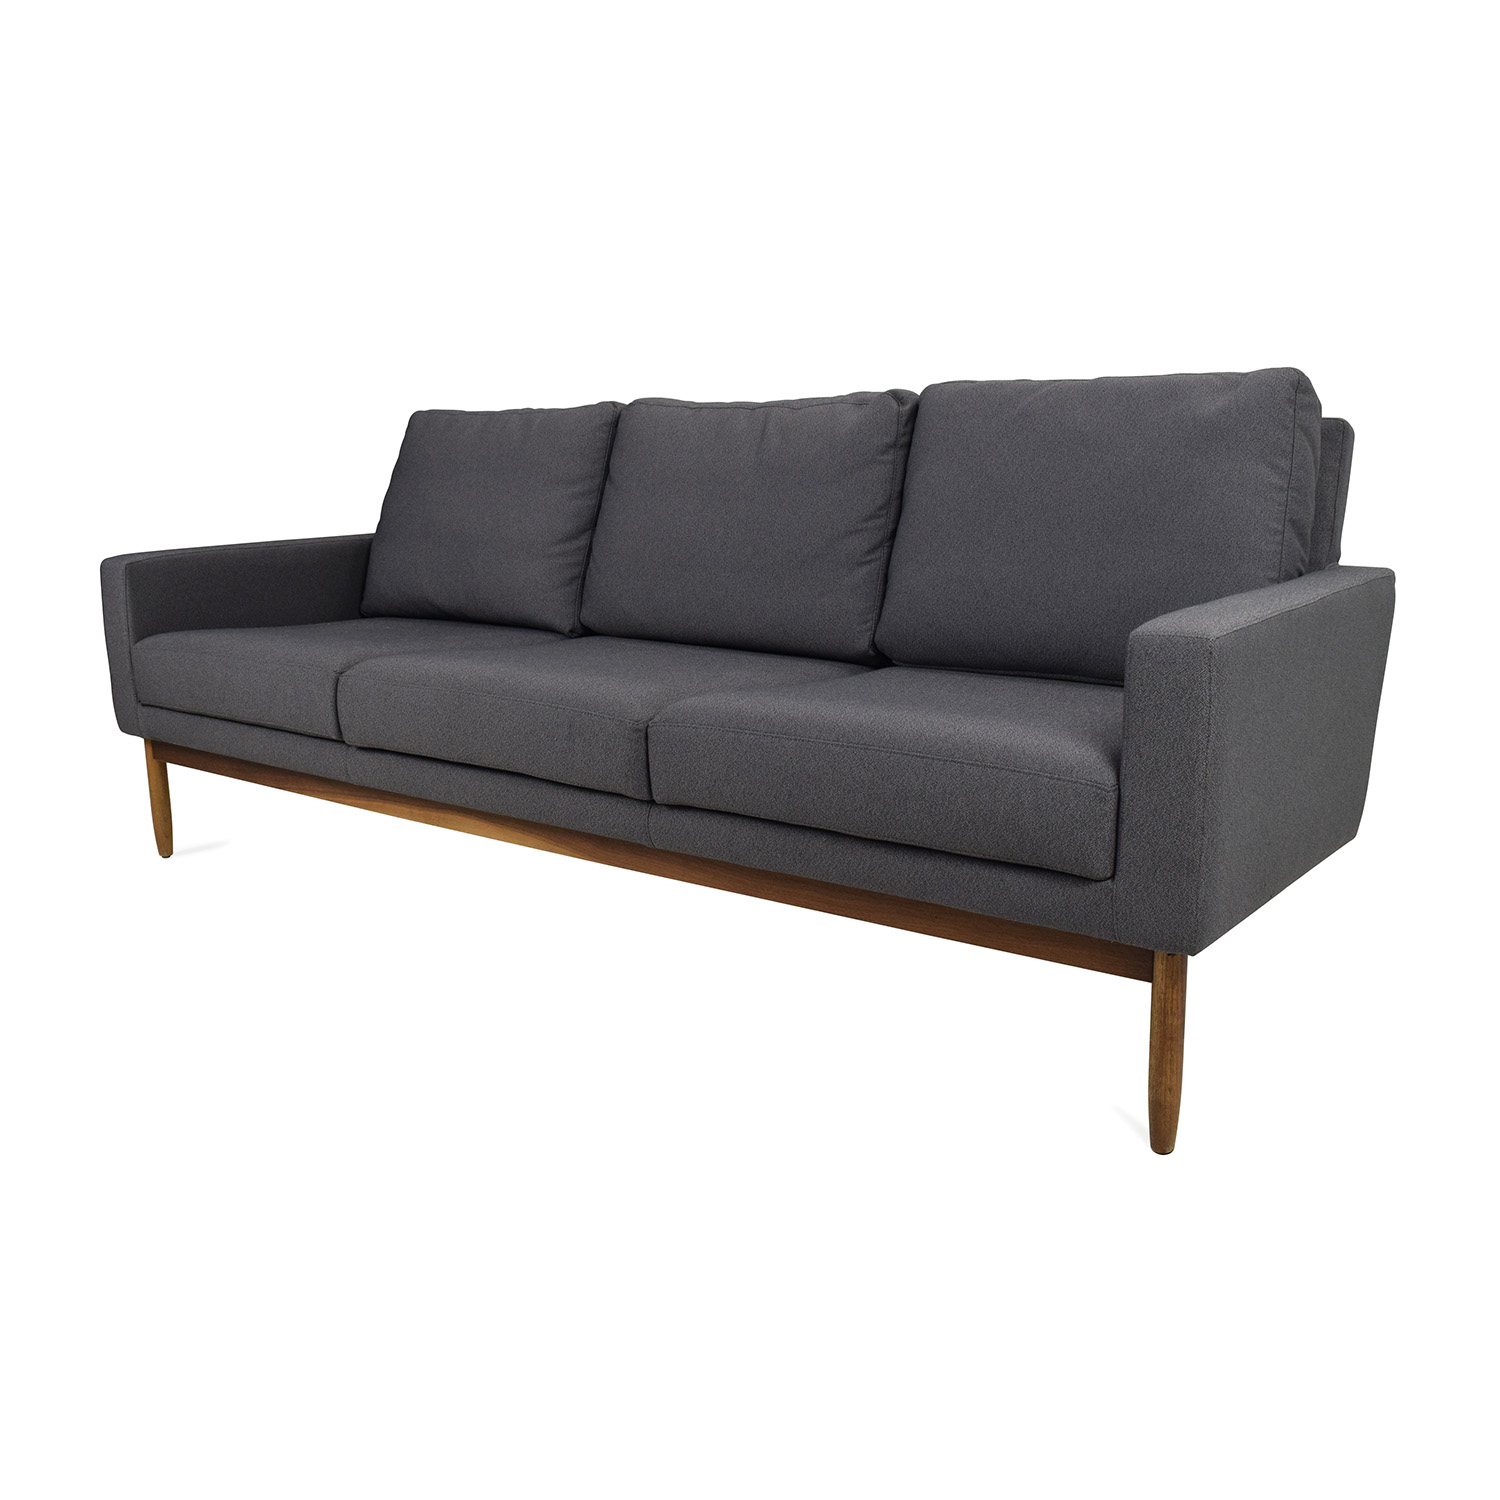 69 off design within reach design within reach raleigh sofa sofas